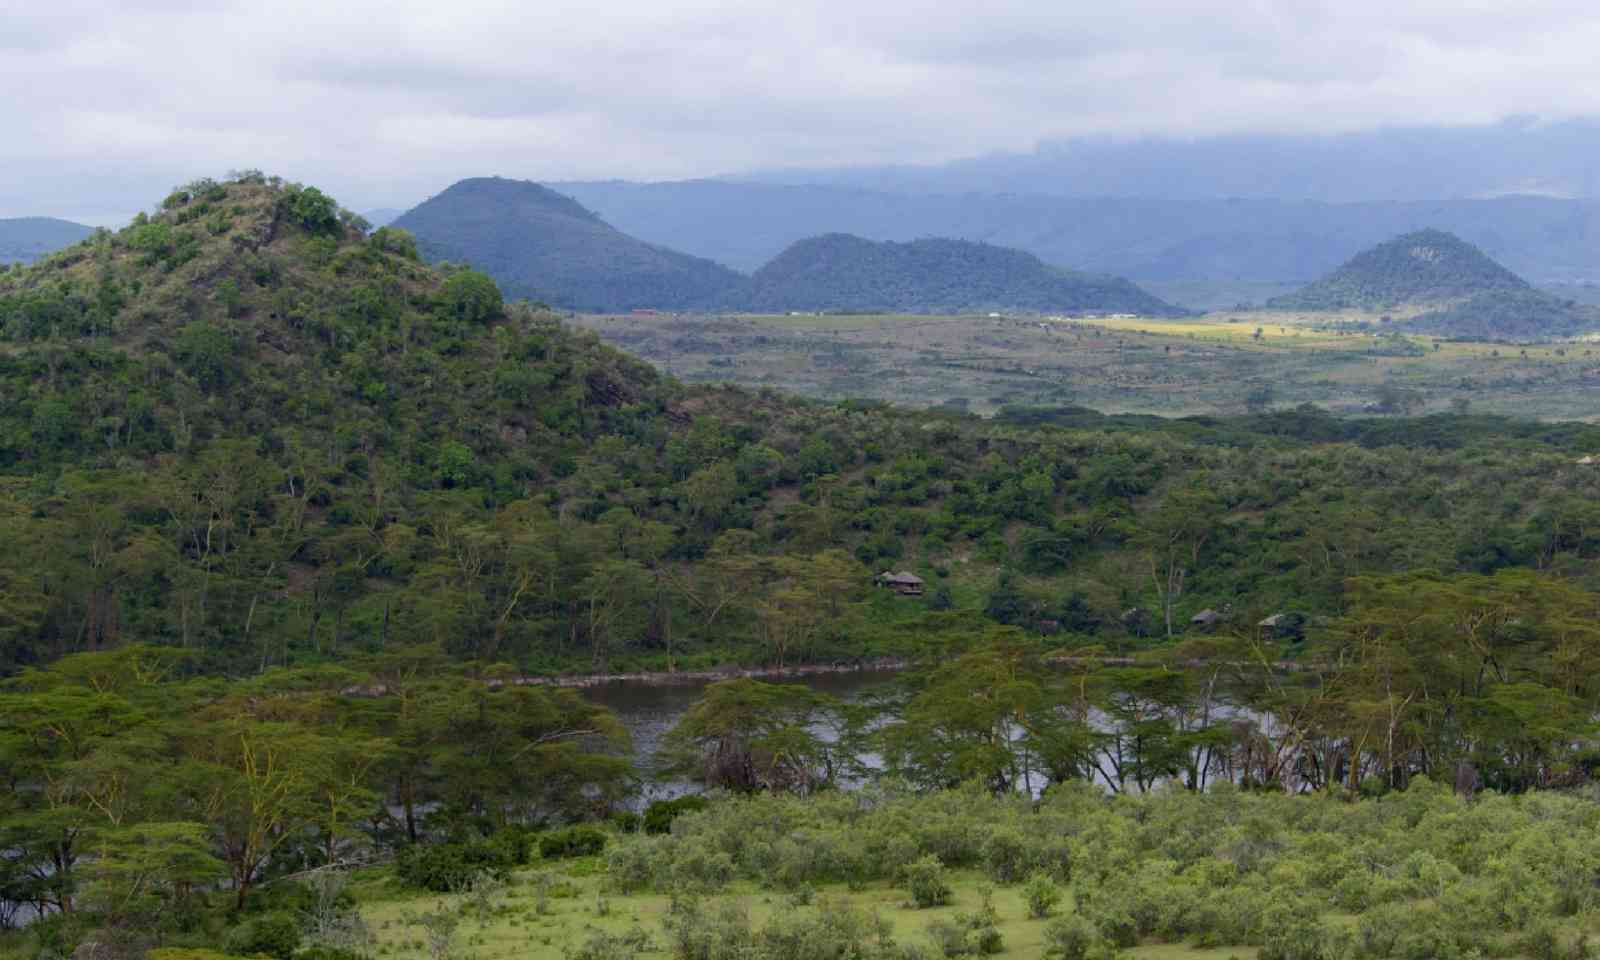 Green hills and mountains in Great Rift Valley, Kenya (Shutterstock)